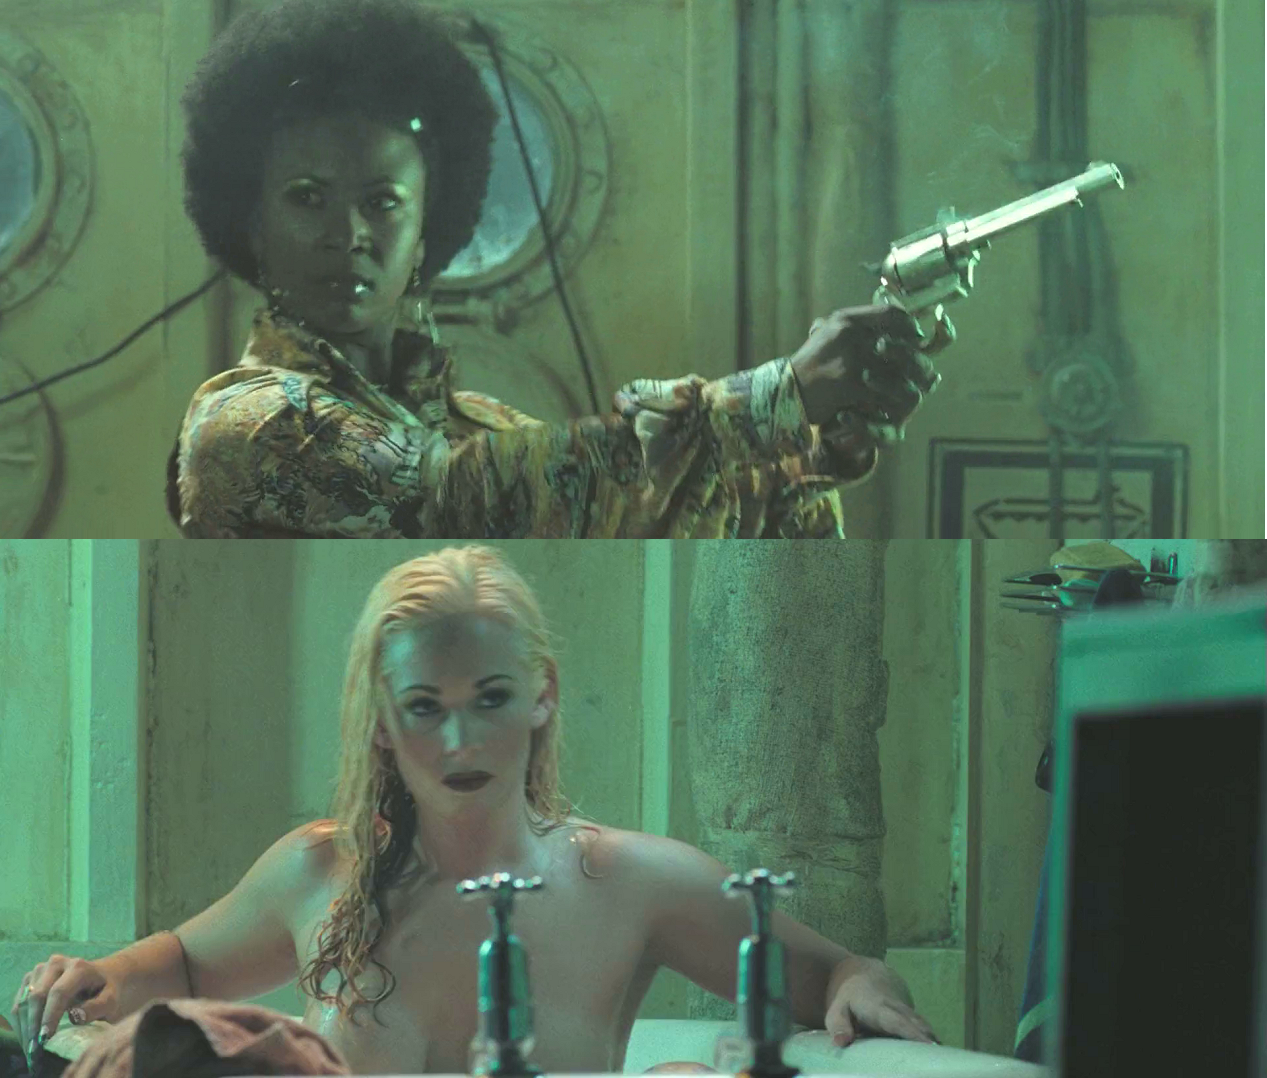 Afro Girl and Bathtub Blonde (Doomsday)